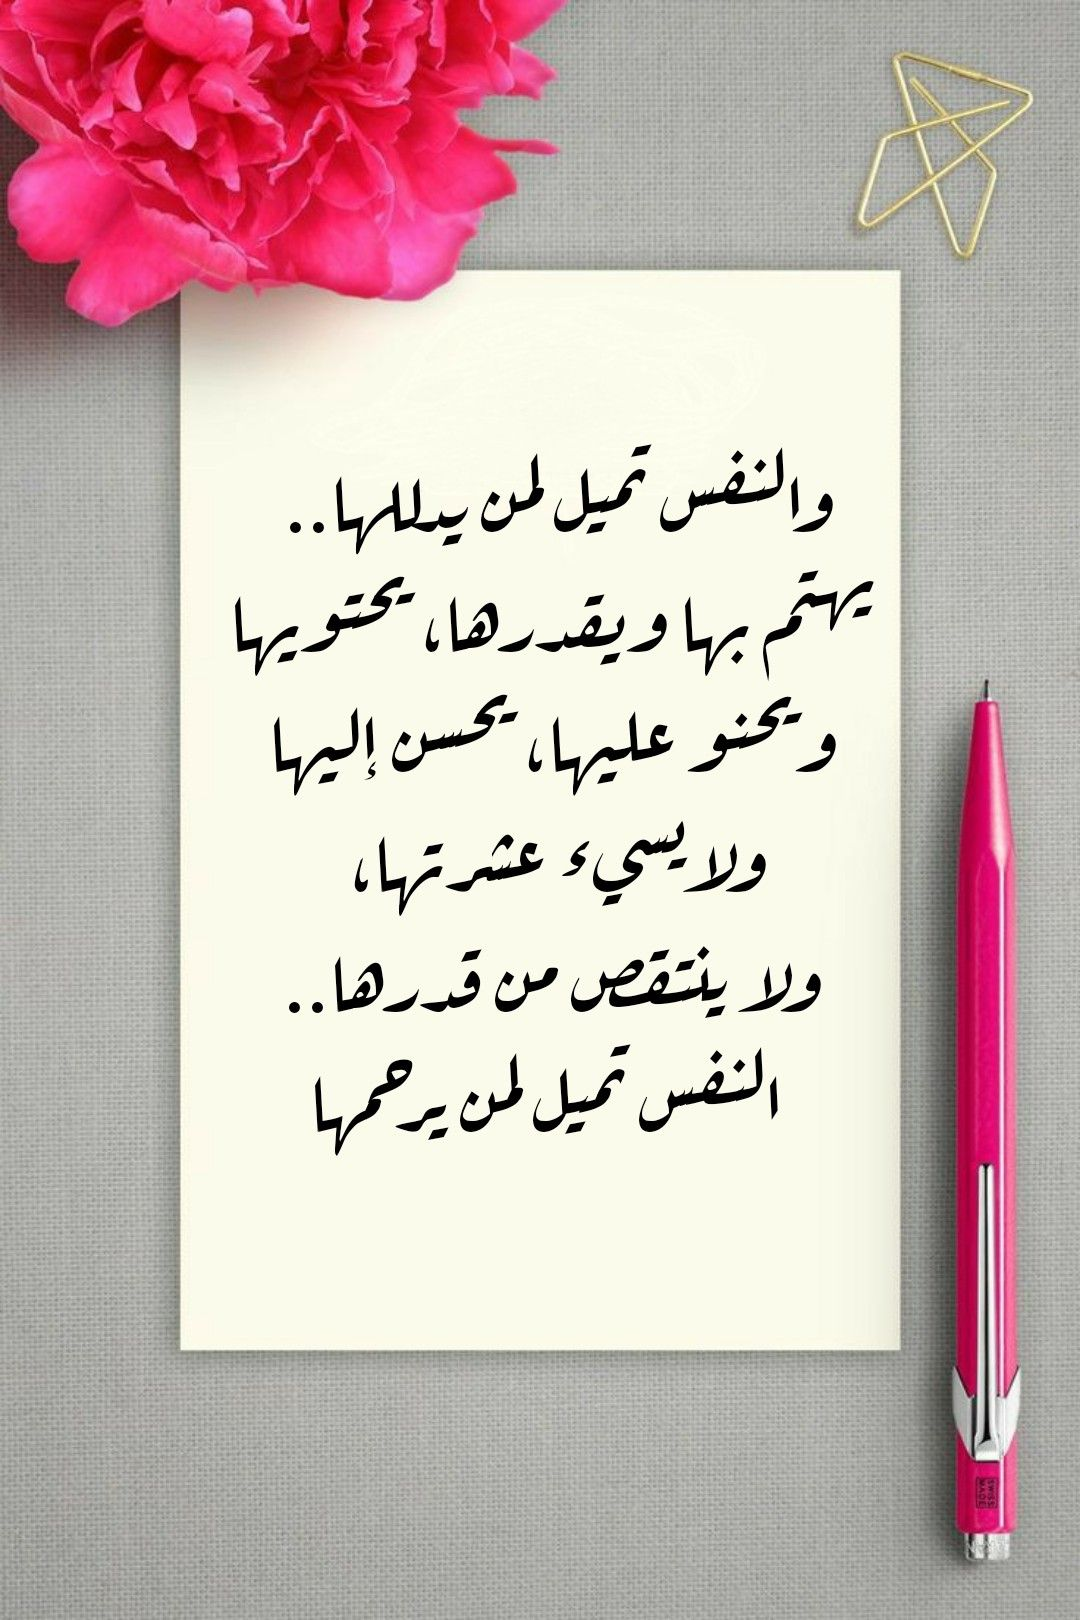 Maanlelganna Quotes For Book Lovers Arabic Love Quotes Bff Quotes